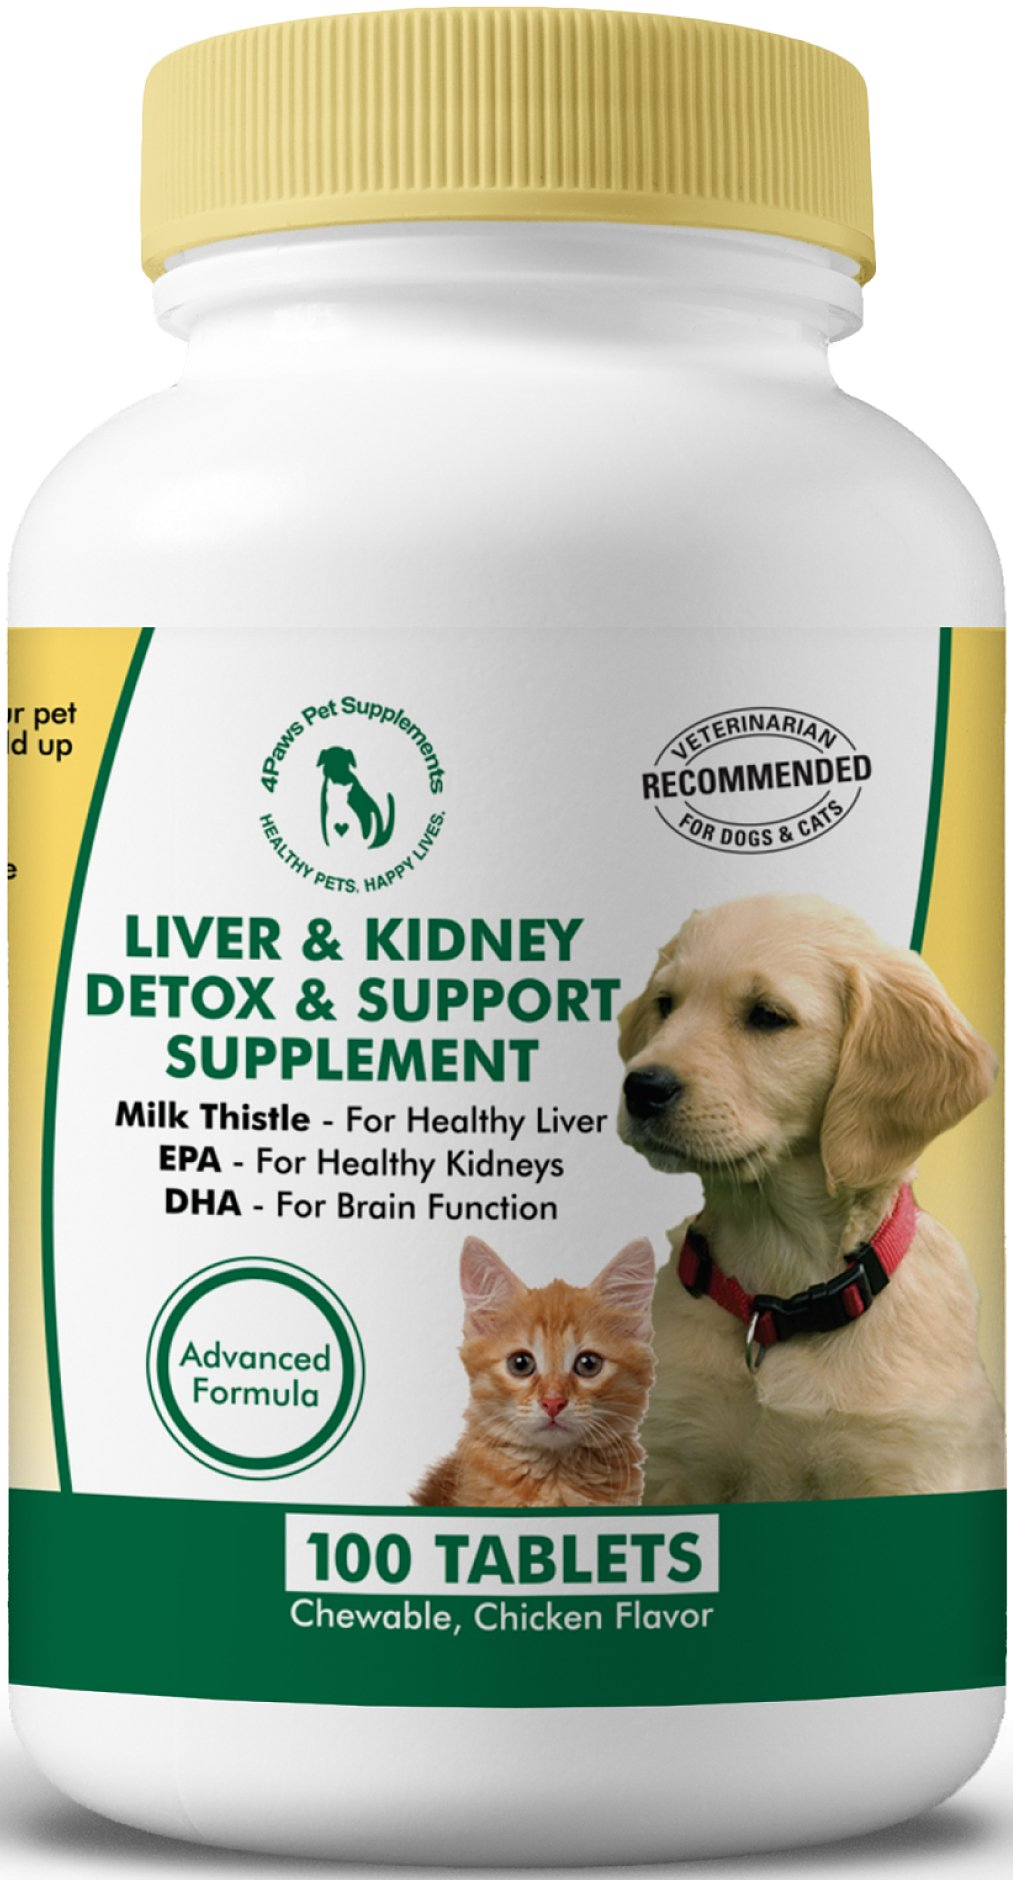 Milk Thistle Liver & Kidney Supplement for DOGS and CATS with DHA, EPA, Silymarin, and Vitamin B (B1 B2 B6 B12) to Prevent Liver and Kidney Disease - 100 Chewable Treats - Chicken Flavor